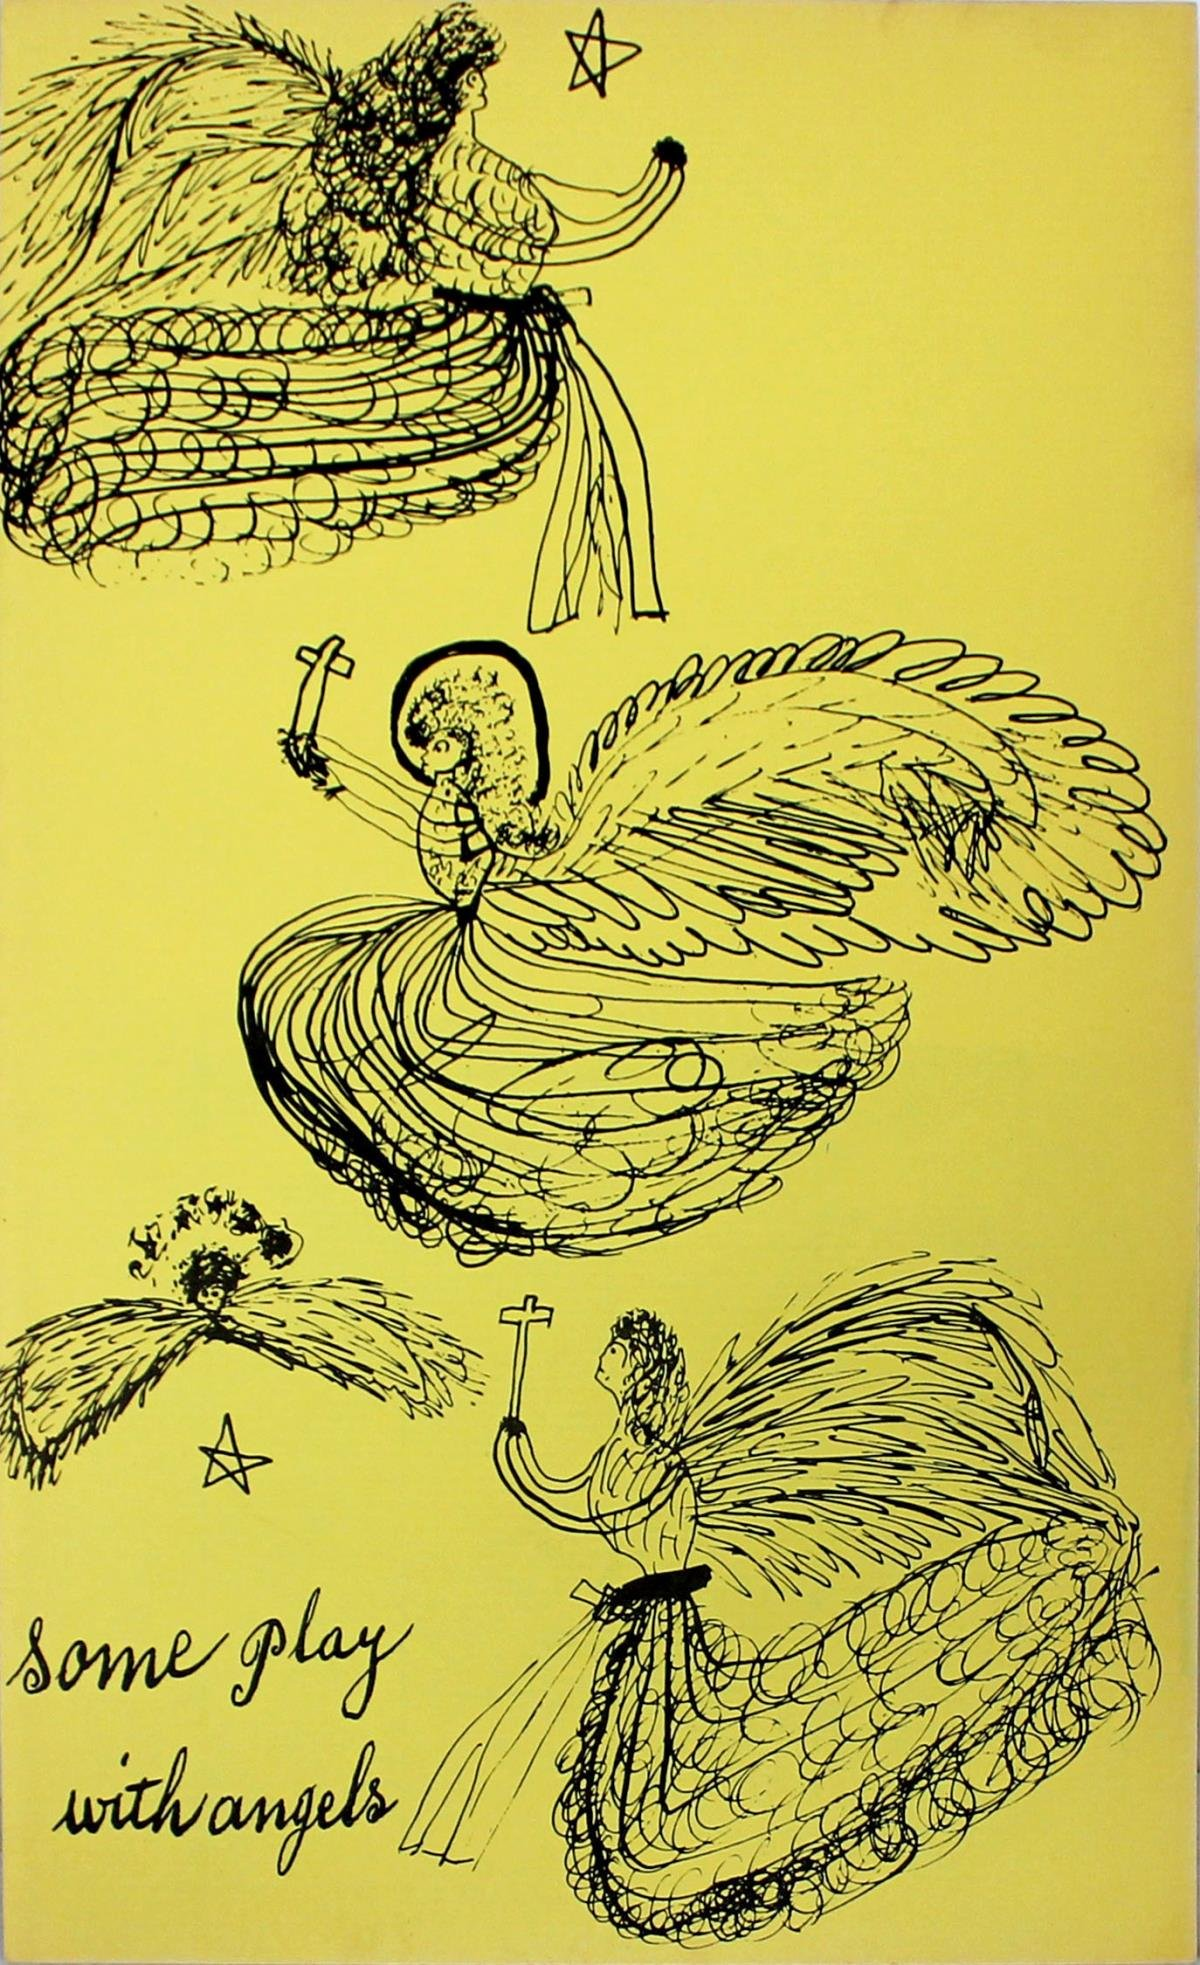 Andy Warhol - Some Play with Angels